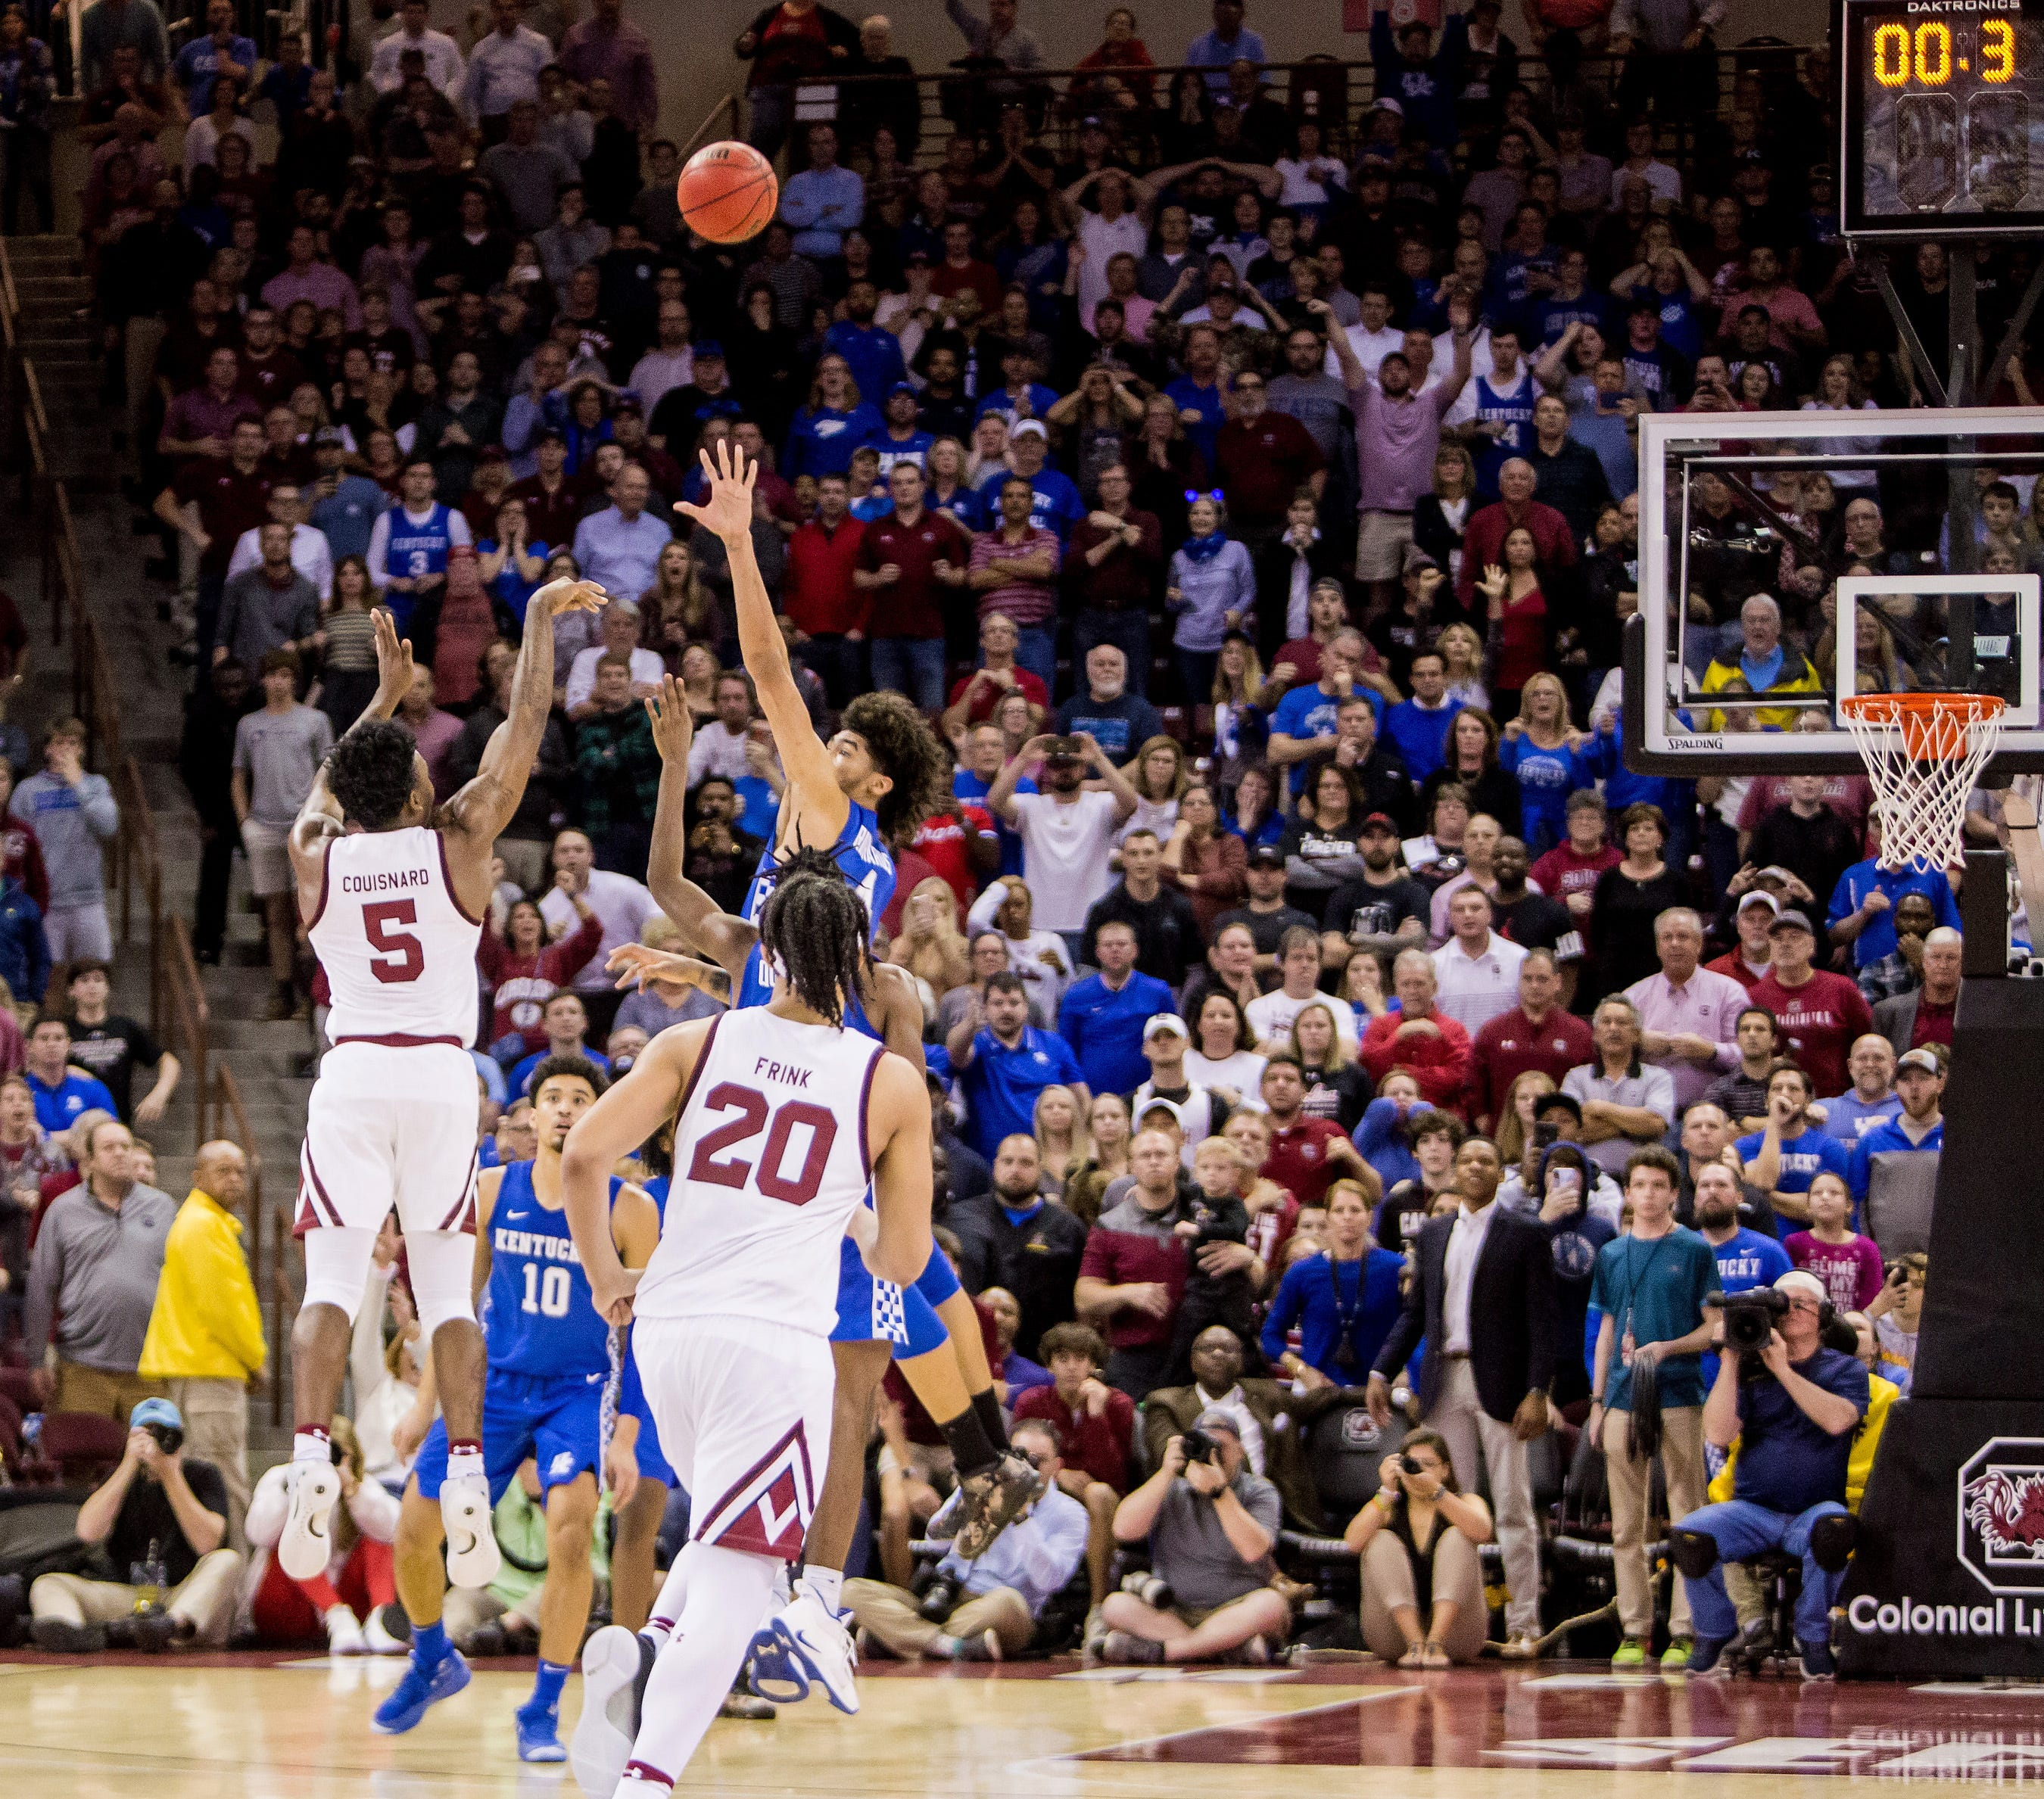 South Carolina upsets No. 12 Kentucky with banked-in 3-pointer at buzzer